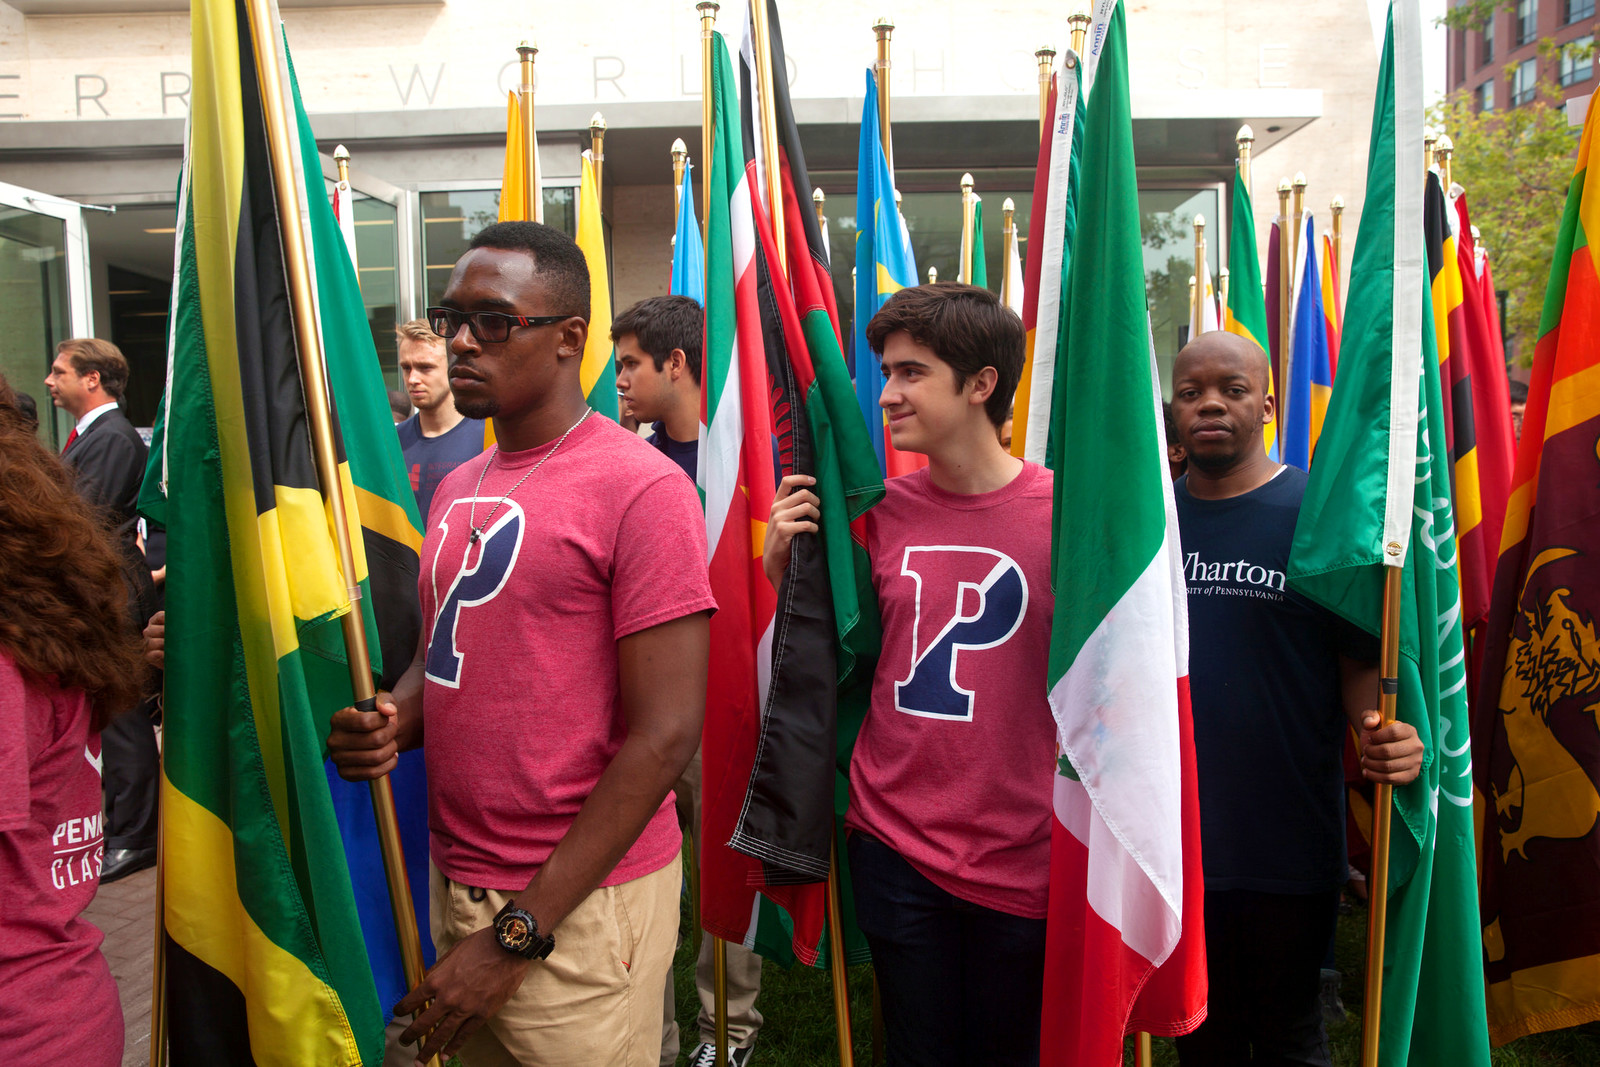 Students holding flags, standing in front of Perry World House